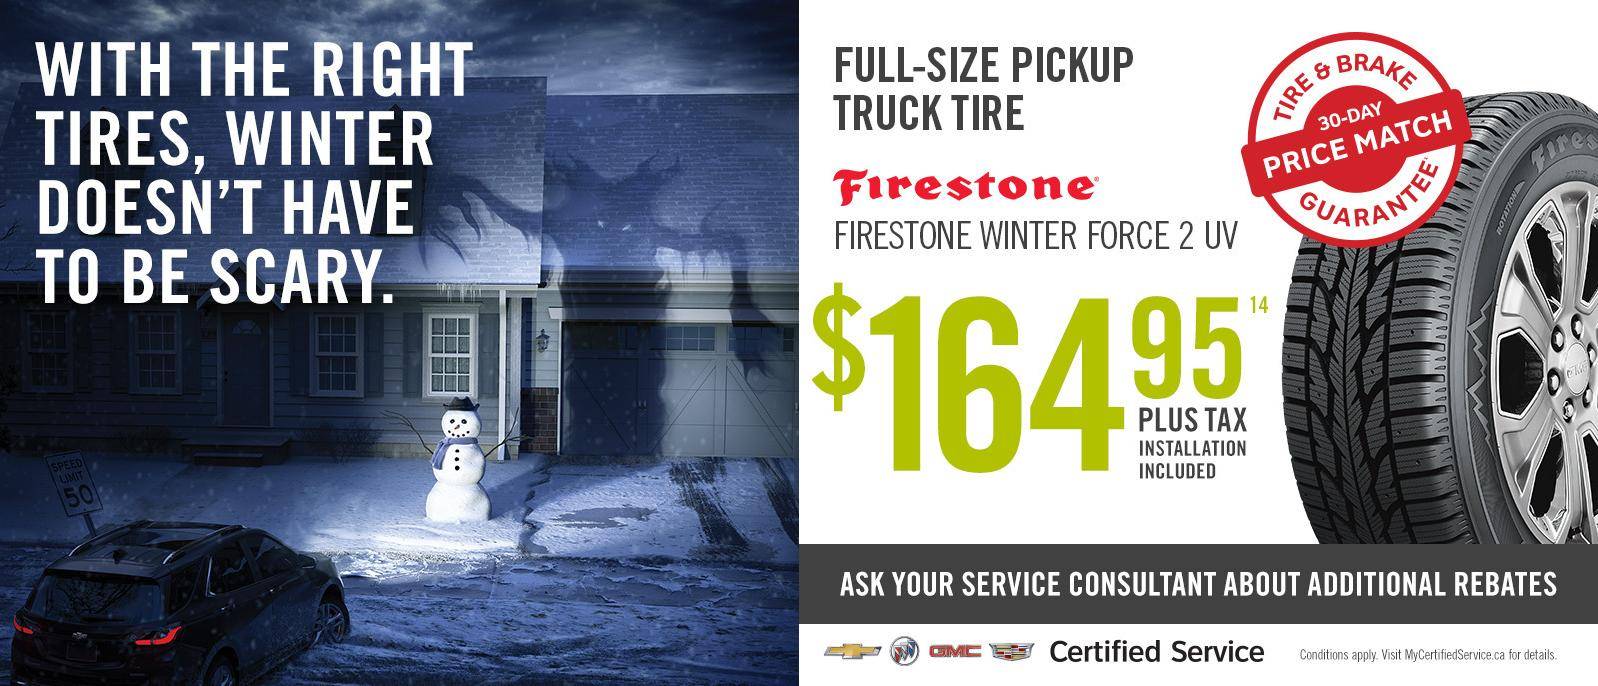 Winter Tire Special Deal Truck Goodyear from $99.95 VanDusen Ajax Ontario